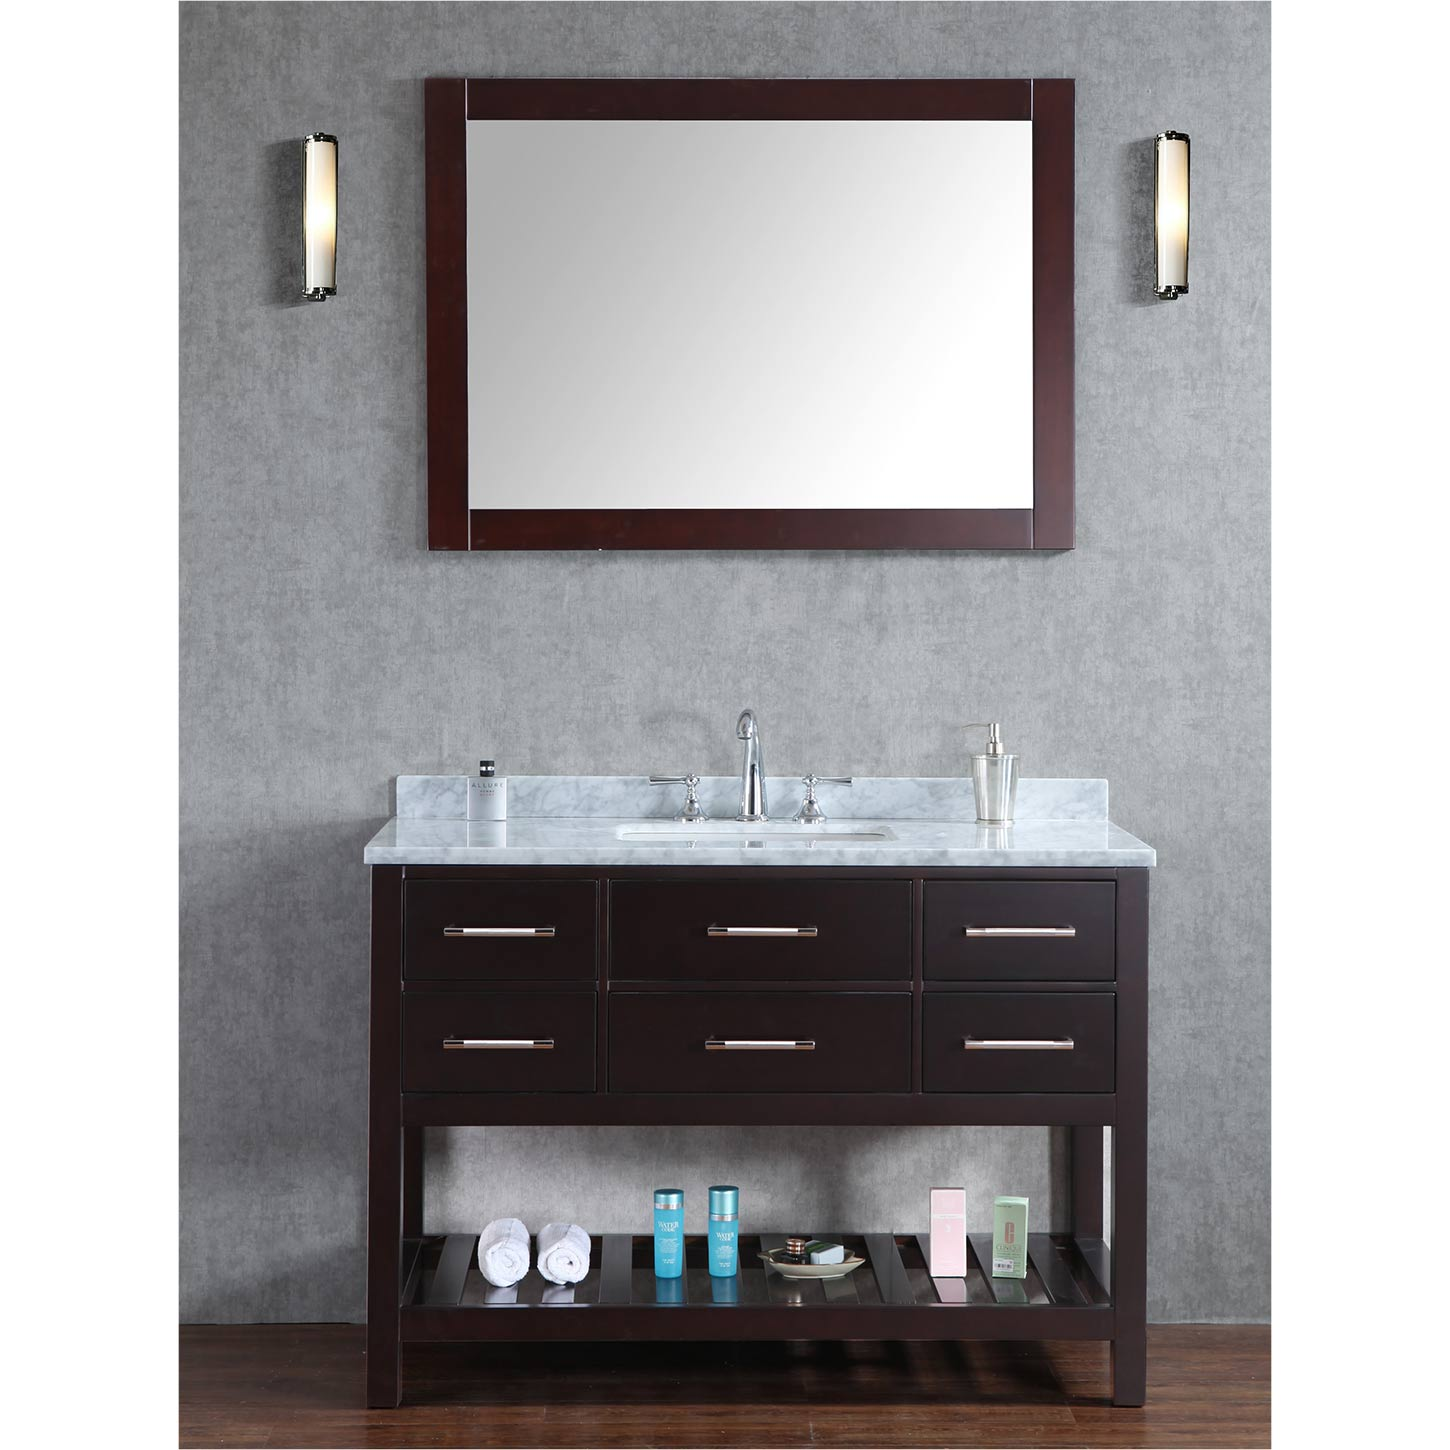 Buy Antonia Inch Solid Wood Single Bathroom Vanity In Espresso